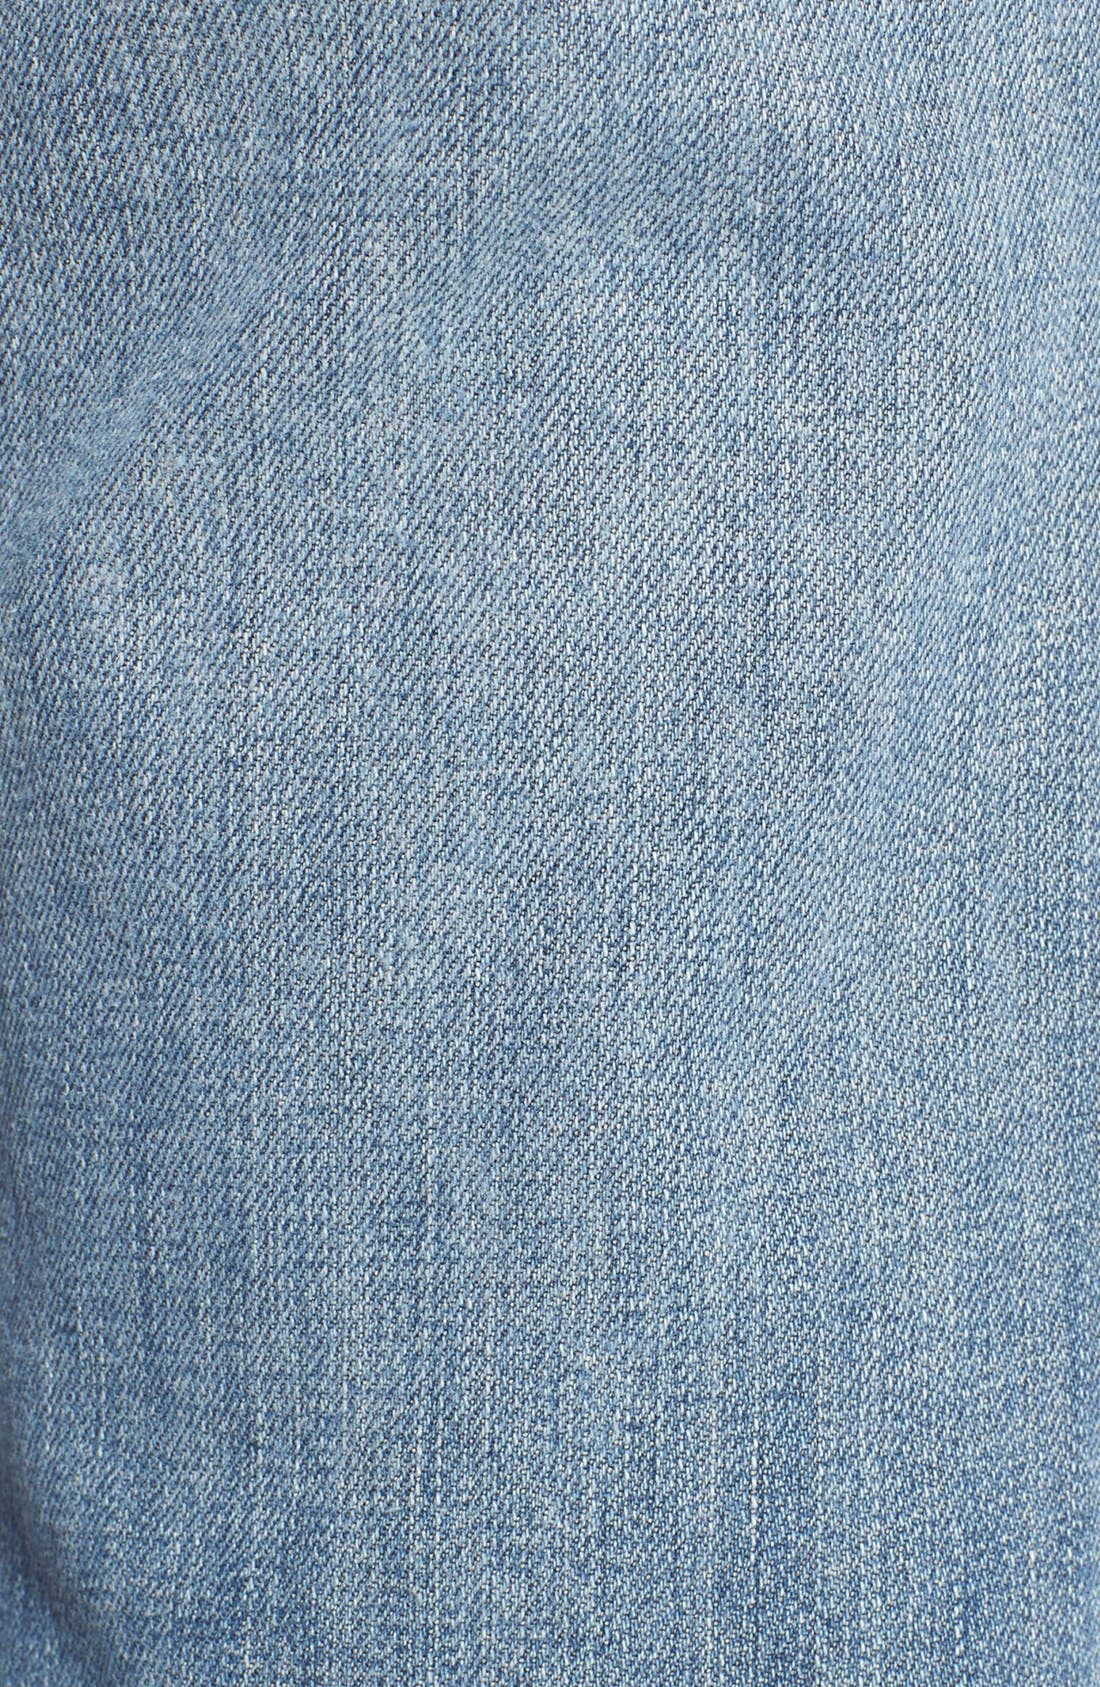 'Collector's - Ex Lover' Straight Leg Jeans,                             Alternate thumbnail 6, color,                             Bev